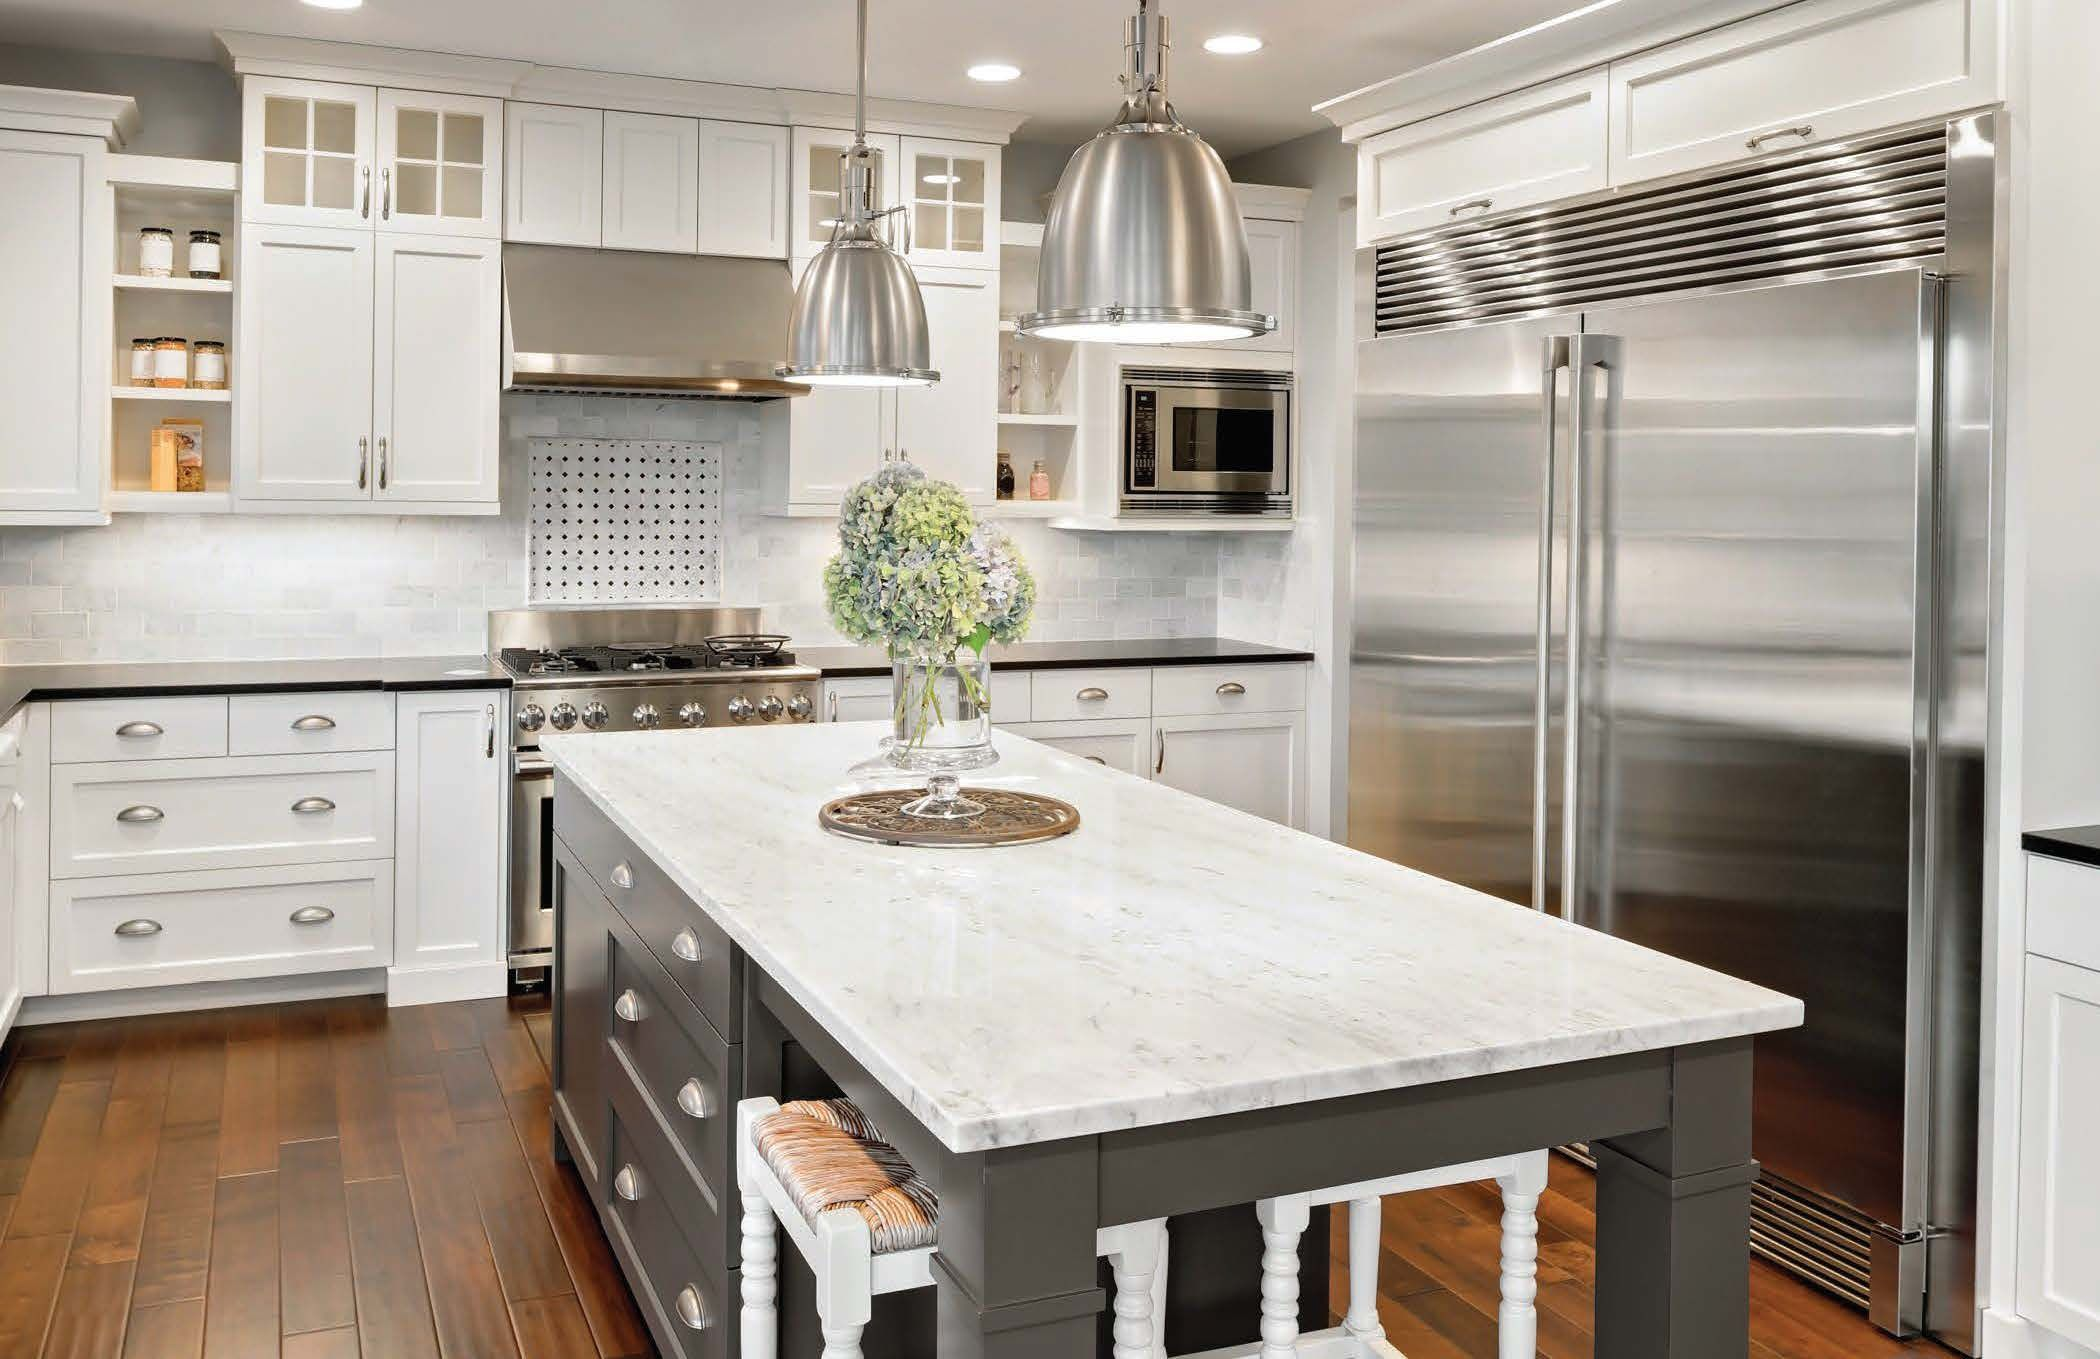 With Skilled Craftsmen And Innovative Design Techniques Imagine Furniture Group Have Consistently Brought Completely Un In 2020 Farmhouse Kitchen Design Kitchen